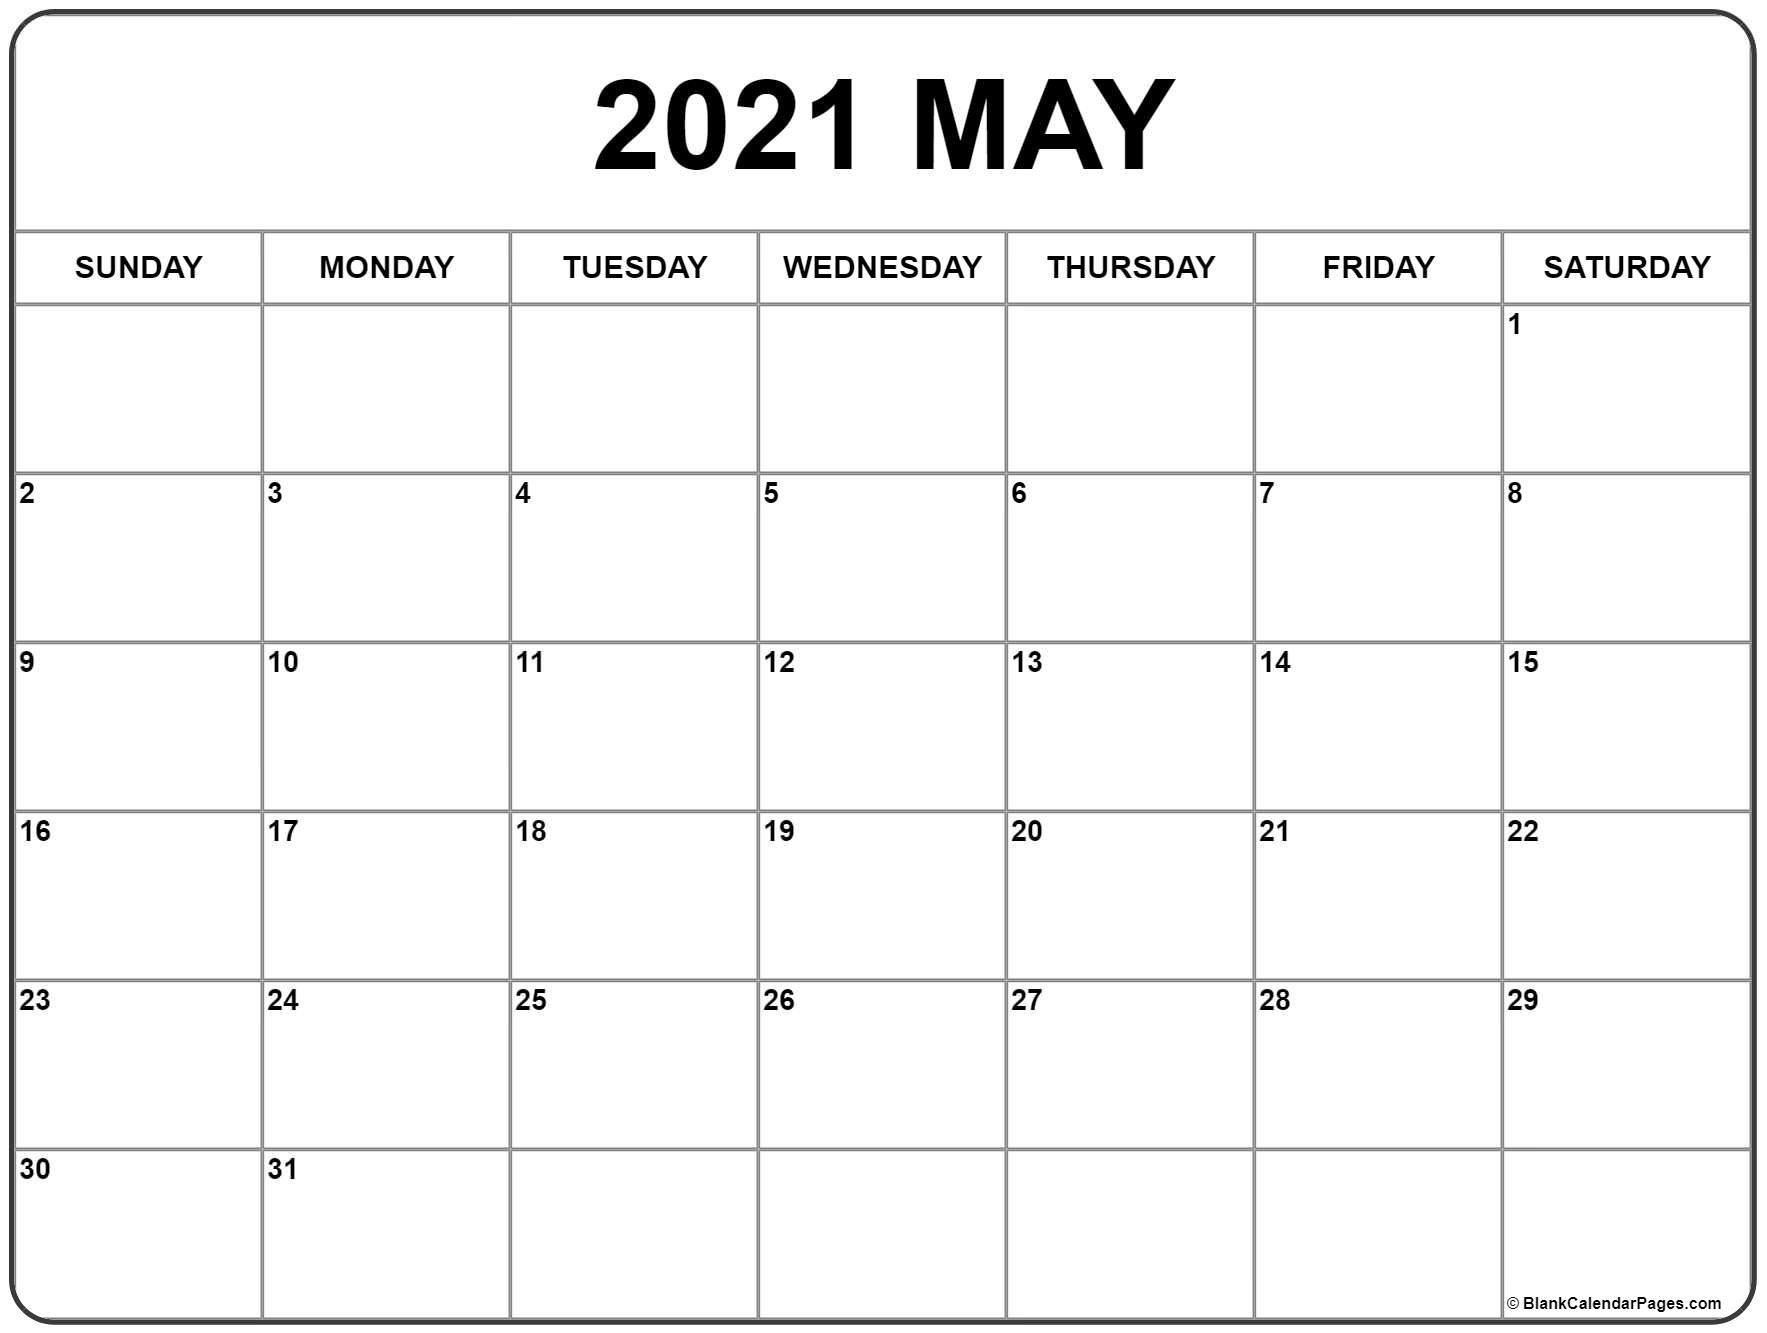 May 2021 Calendar | Free Printable Monthly Calendars  2021 Free Printable Calendars Without Downloading